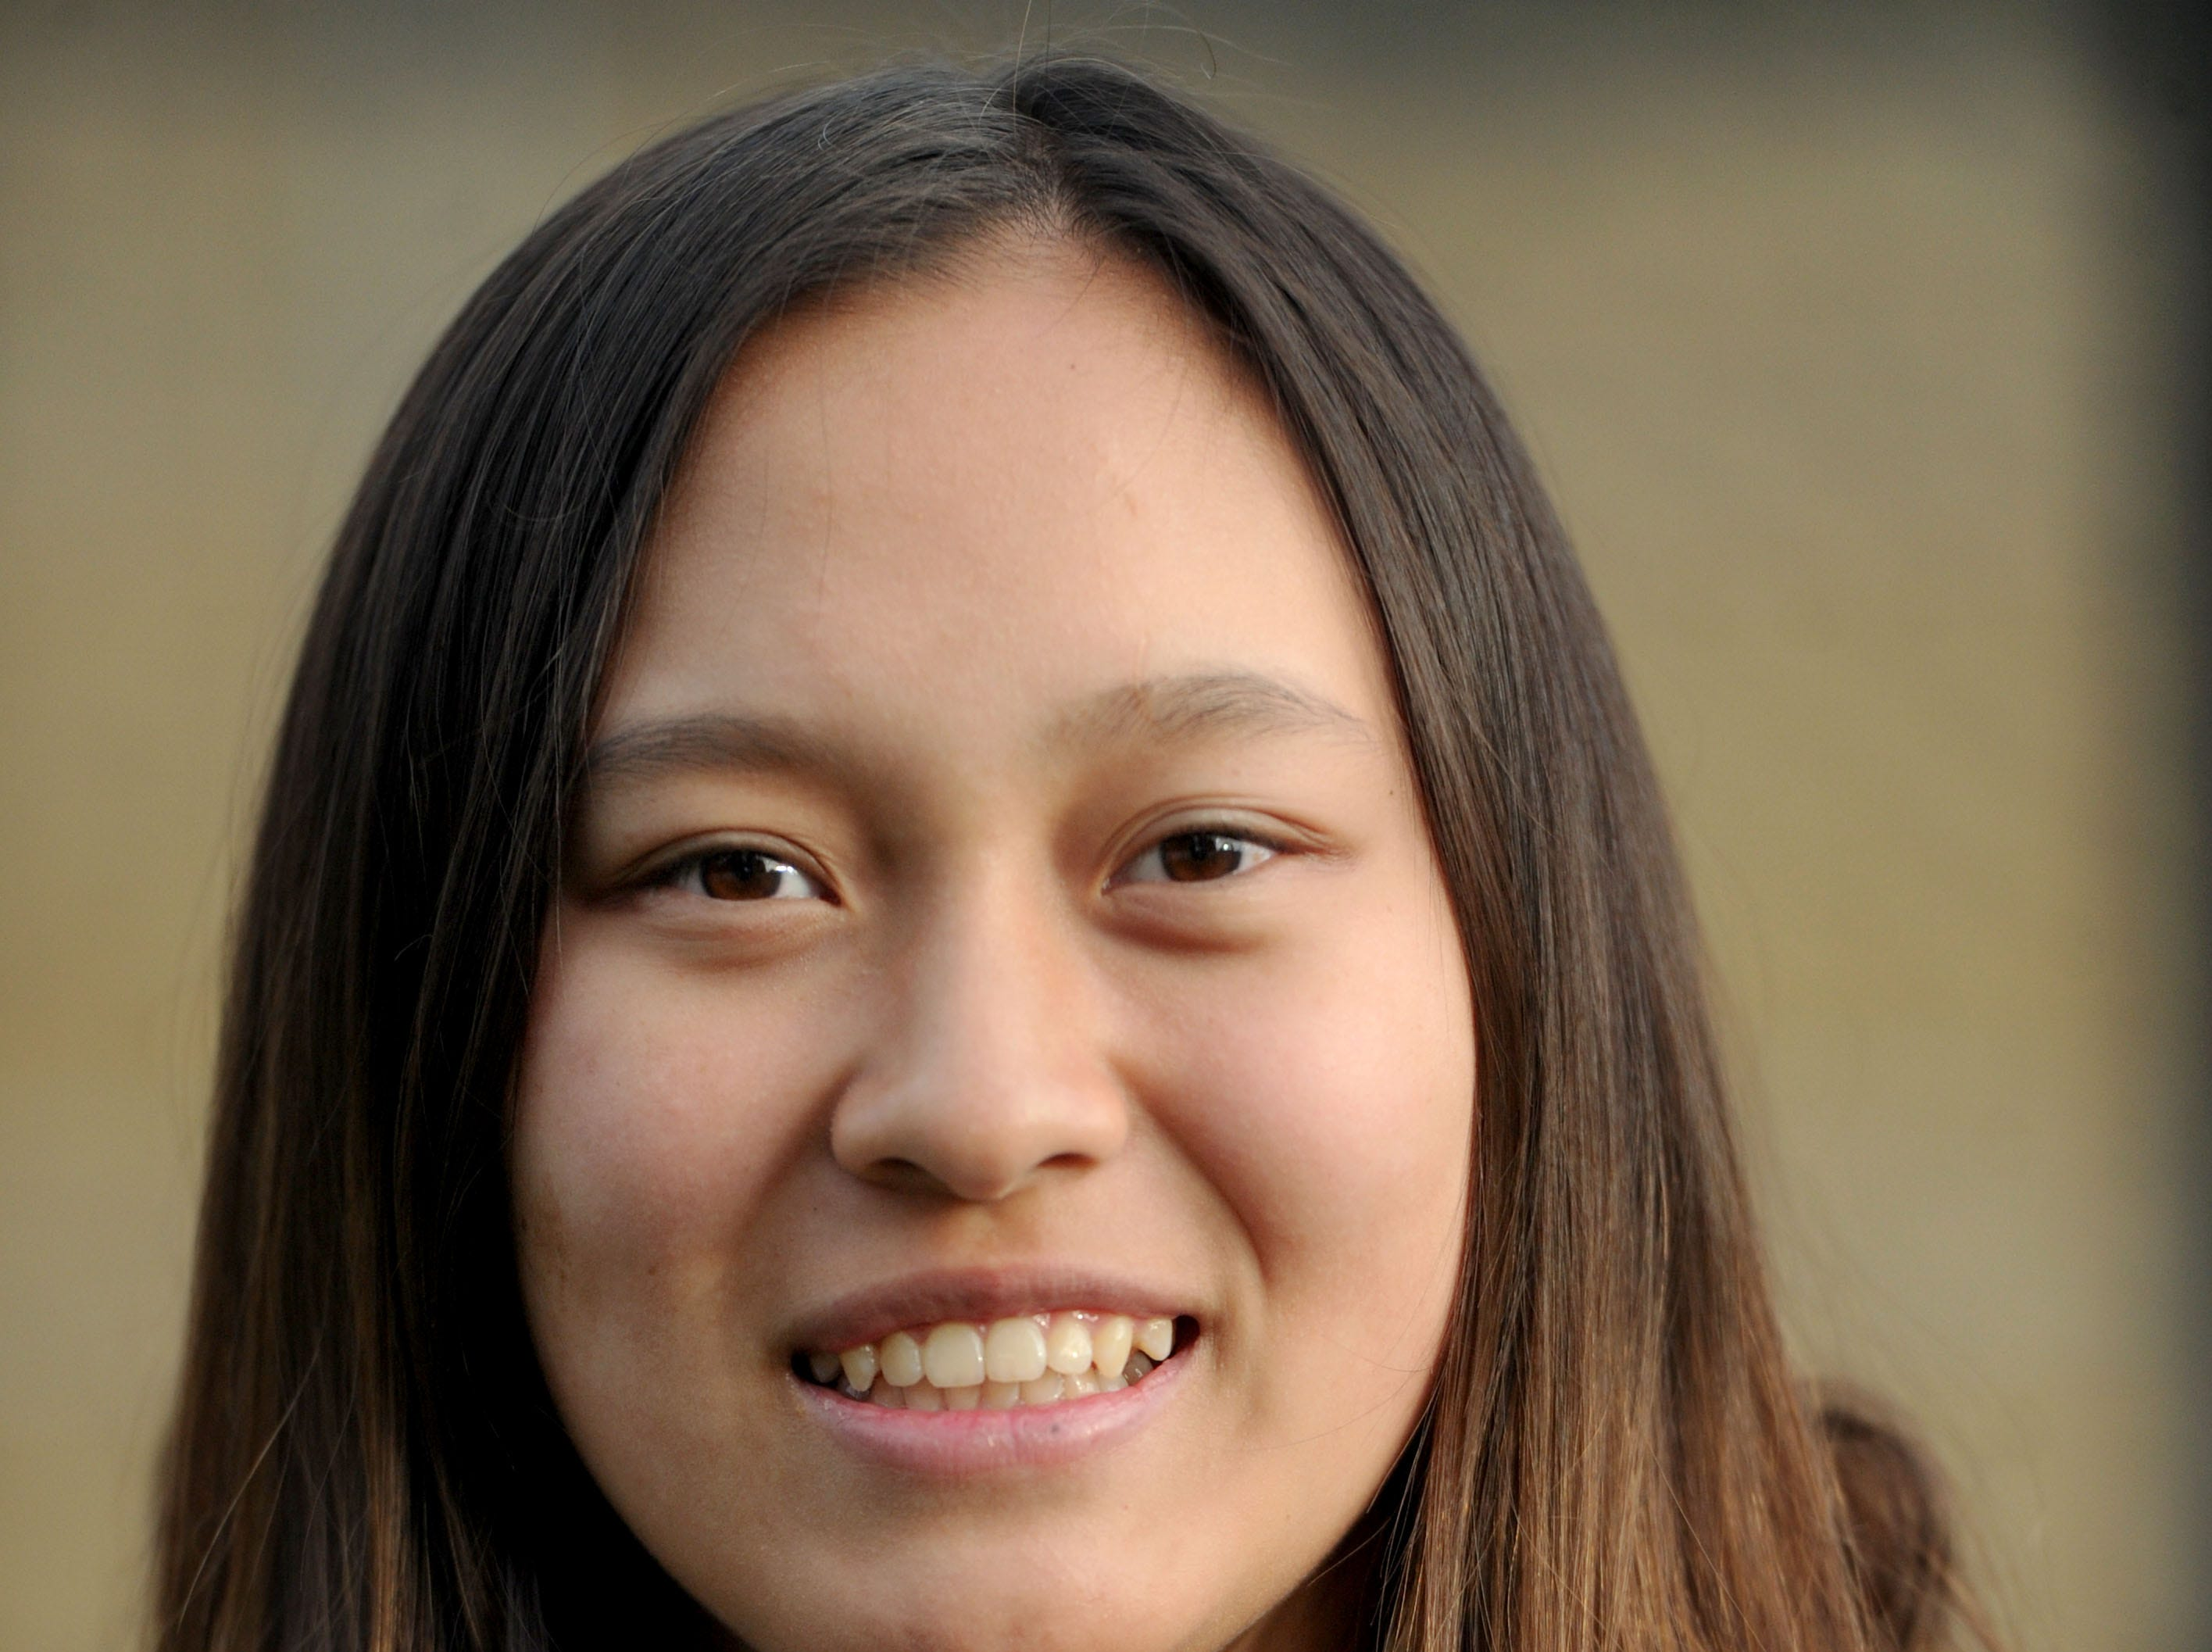 "CHARISSA SHANG, Oaks Christian: The former Ventura County Golf Association Player of the Year delivered on her big potential as a freshman, earning the medal in nearly every match. The Marmonte League champion and MVP rode efficient approach play and putting to a sub-par scoring average. She led the Lions to a share of the league title by shooting a 3-under 139 to finish first at the 36-hole league championships at Los Robles Greens. She advanced to the CIF-SCGA Southern California Girls Golf Championship after shooting a 75 at the CIF-SS Individual Finals. Off the course, she's 4.0 student, a concert mistress in the violin and also creates digital art on her IPad. She watches ""The 100,"" listens to Vance Joy and enjoys snowboarding."